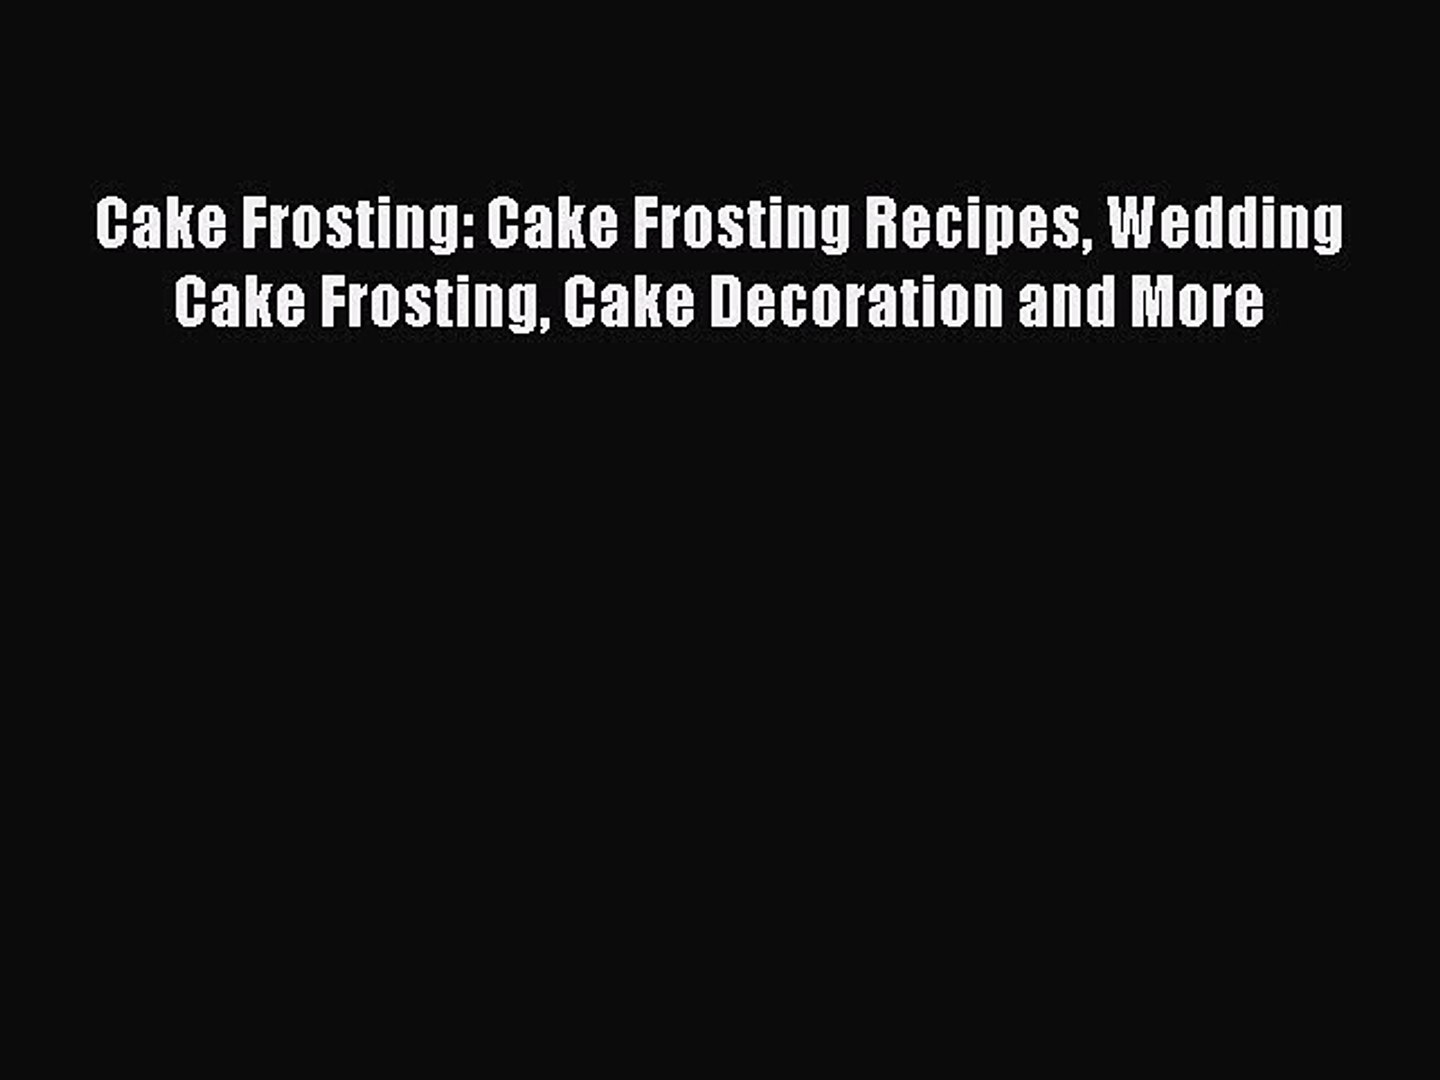 Read Cake Frosting: Cake Frosting Recipes Wedding Cake Frosting Cake Decoration and More Ebook